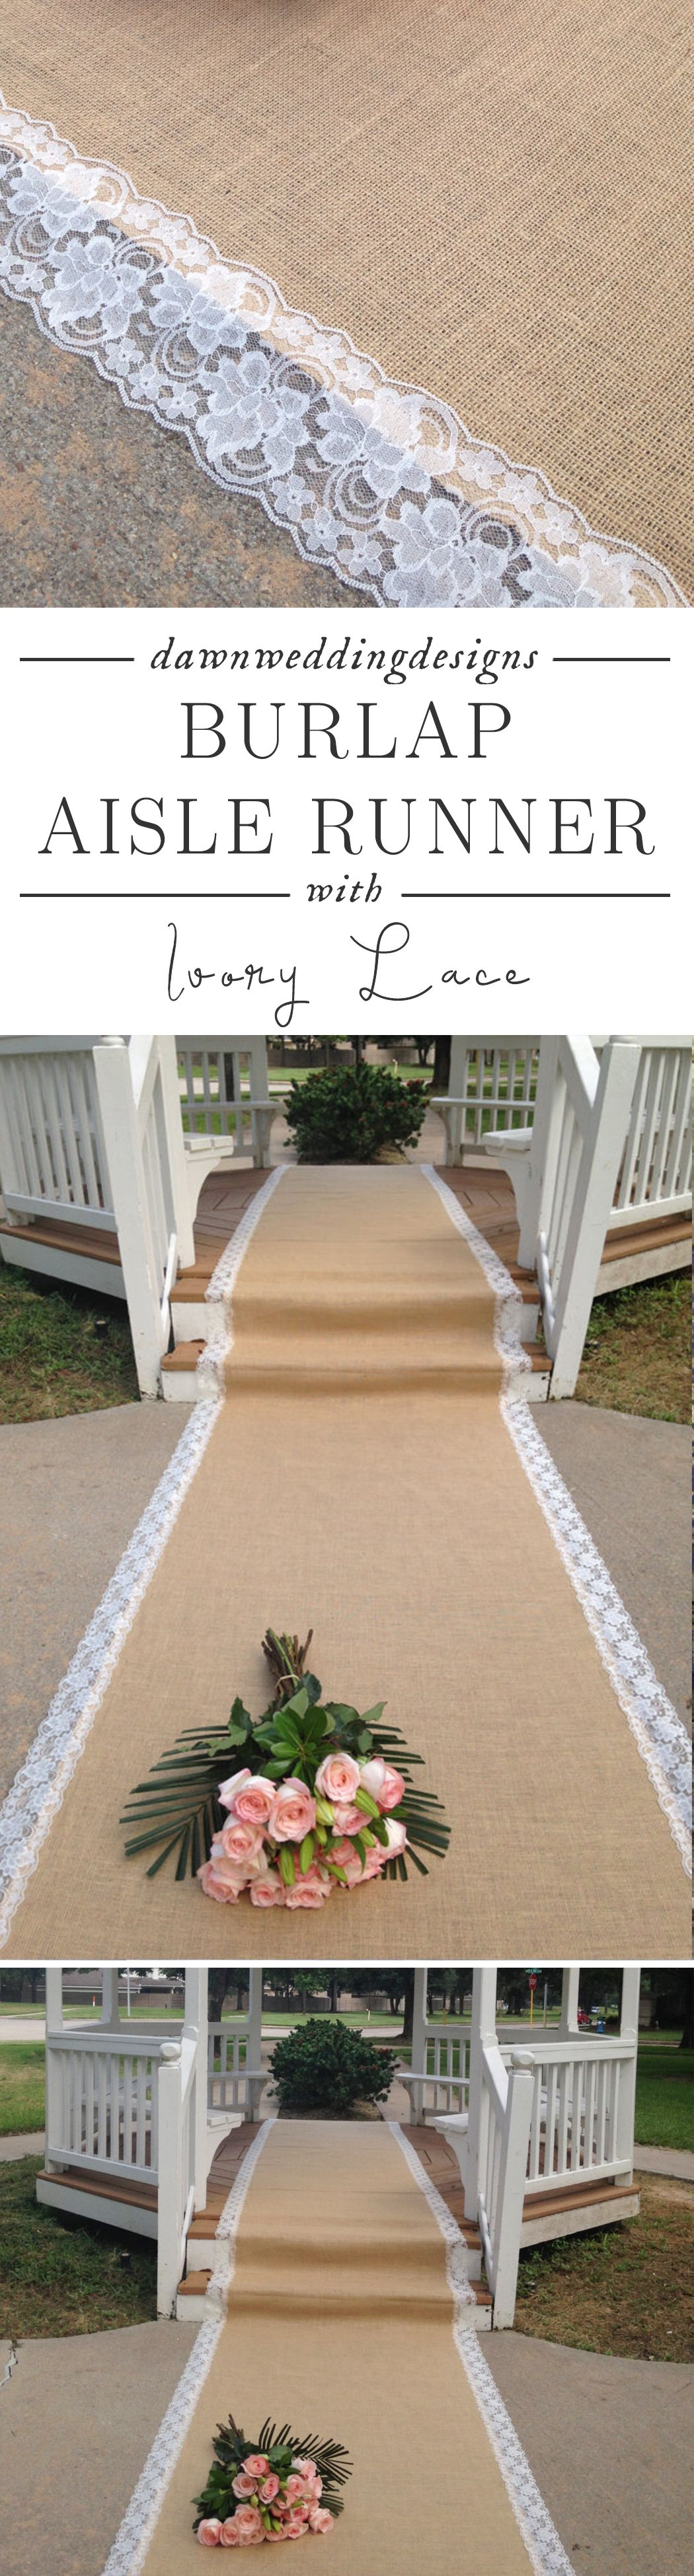 30 ft burlap and lace aisle runner ivory lace pull cord rustic wedding country wedding outdoorbarn weddingfarm weddingbeach wedding